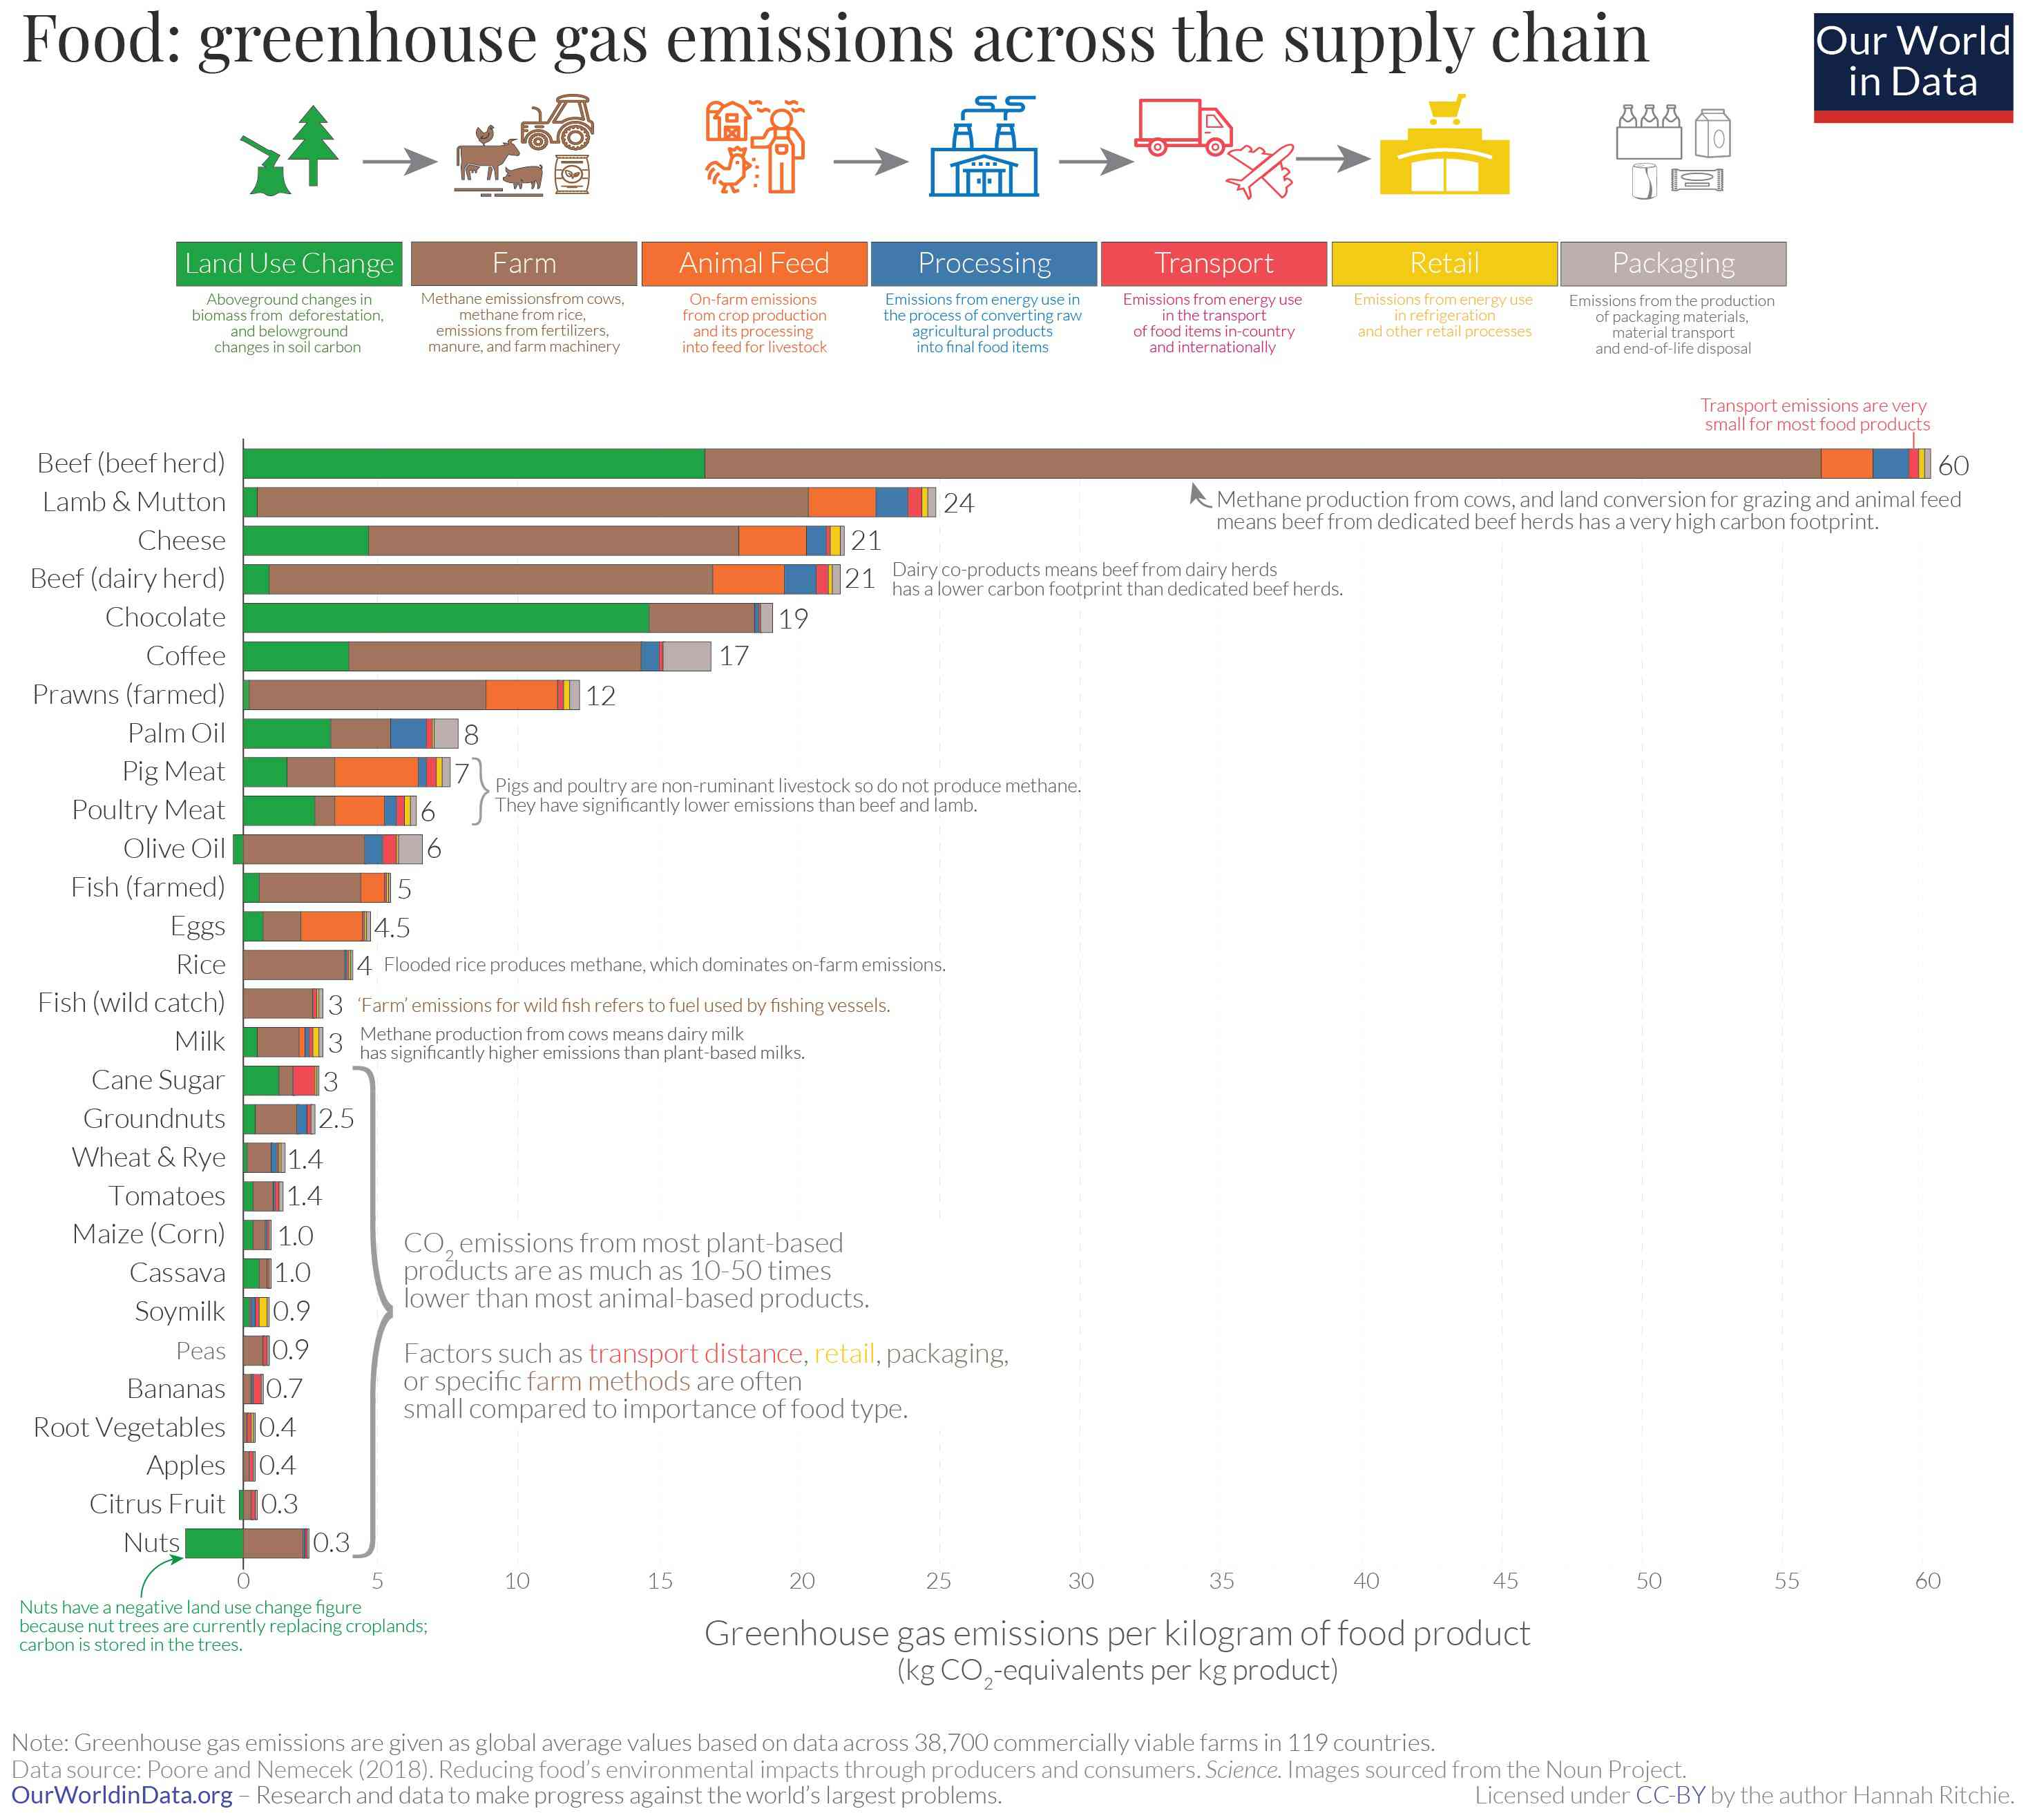 Greenhouse gas emissions from beef to nuts.